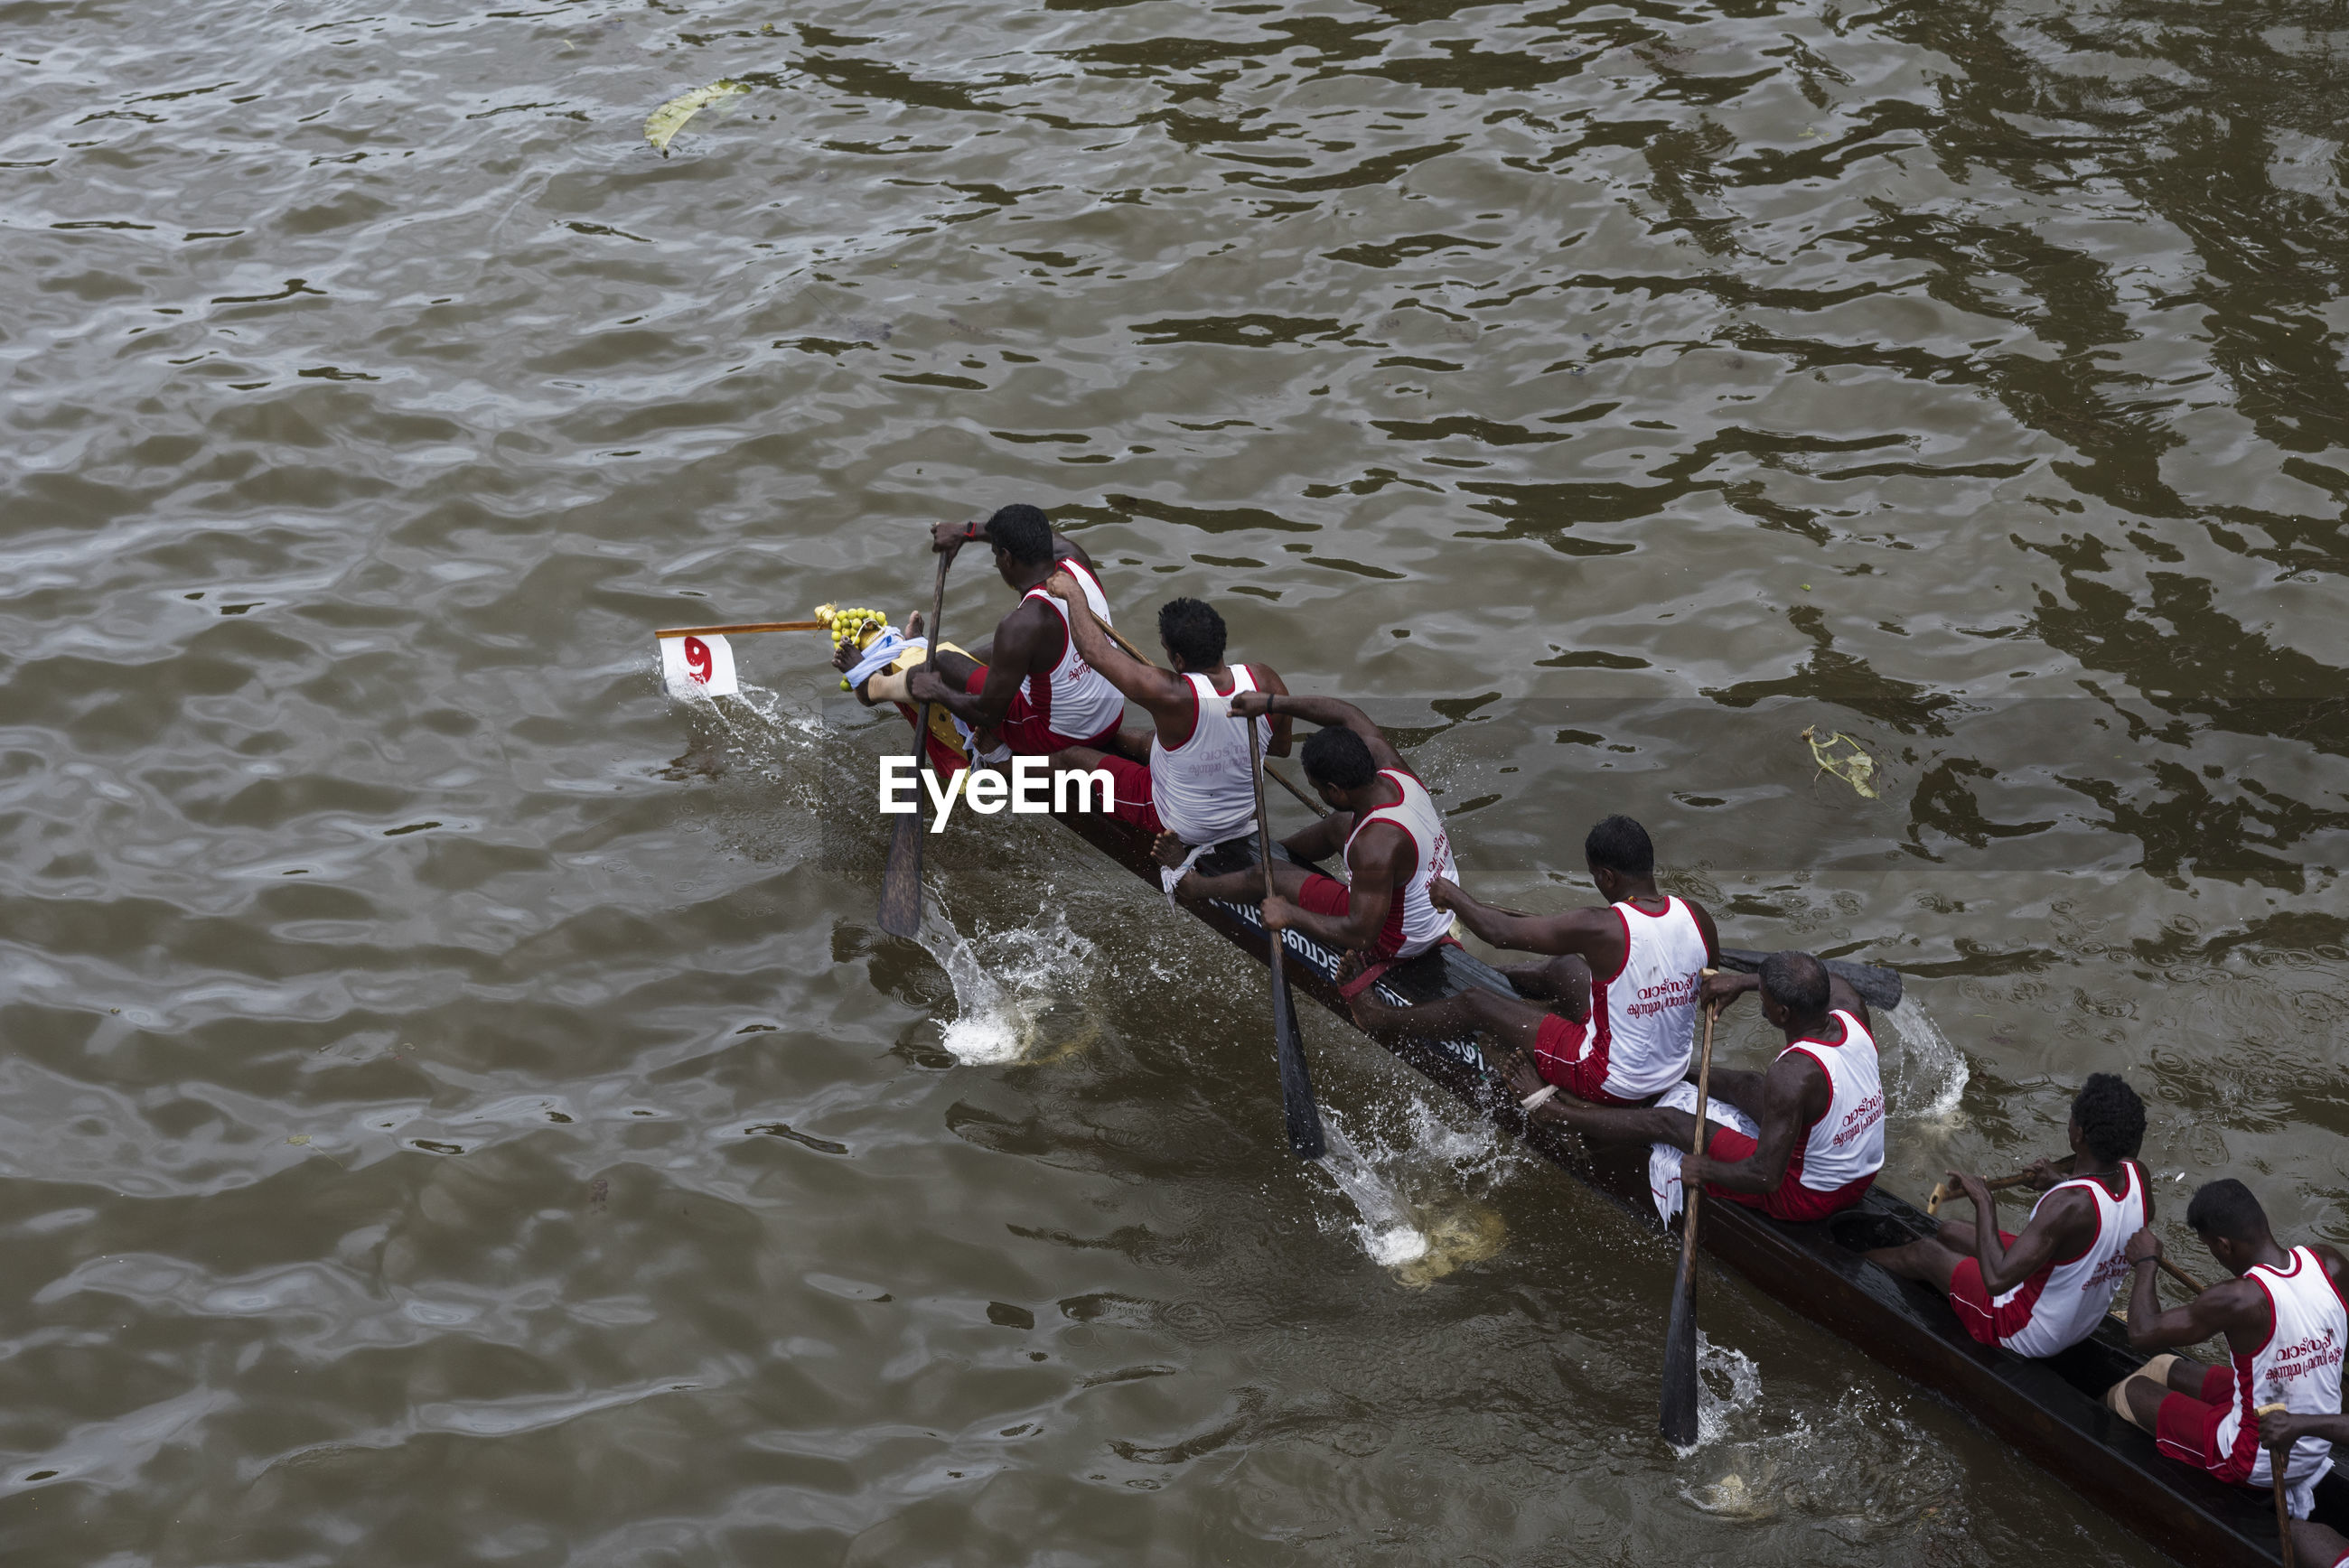 HIGH ANGLE VIEW OF PEOPLE IN RIVER